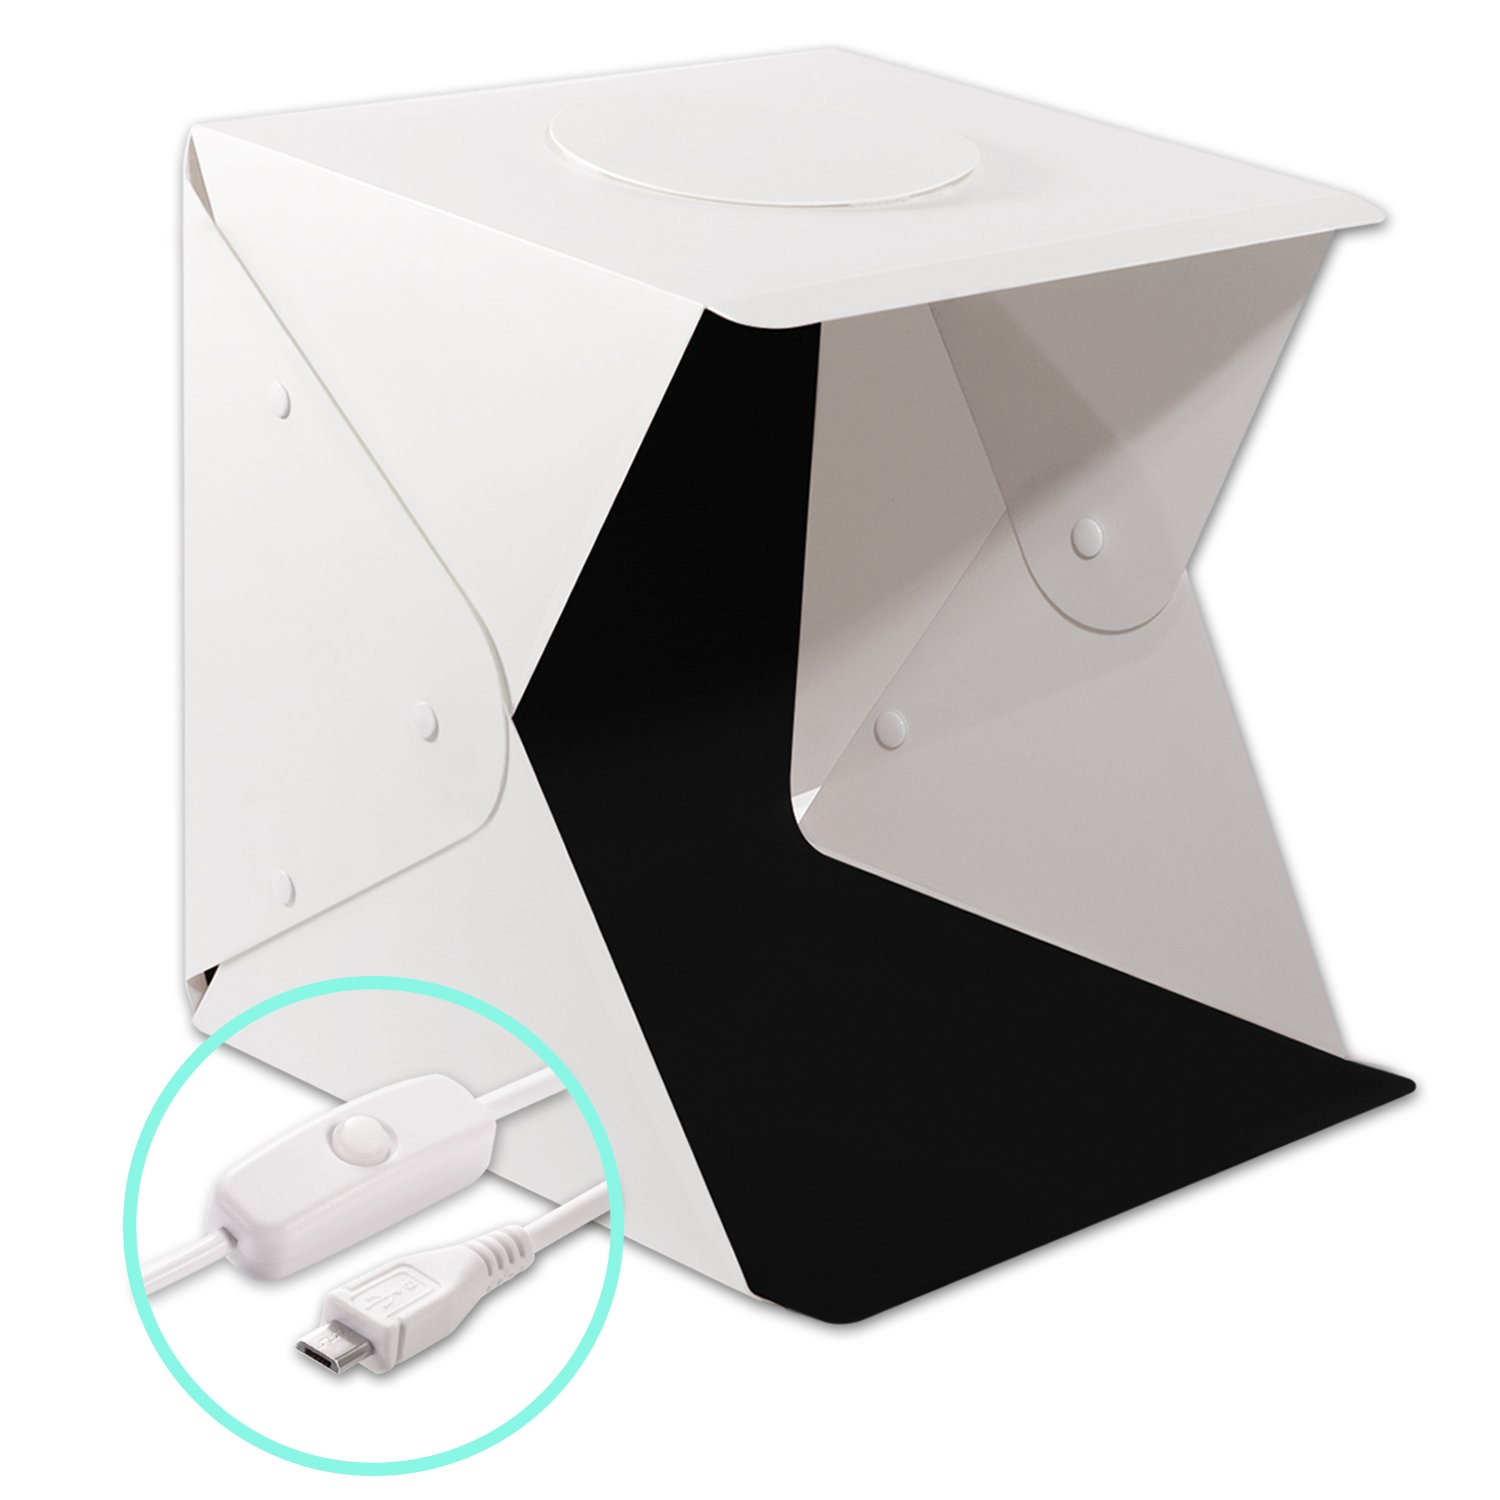 Portable Photography Studio Light Box Shooting Tent, DONWELL Folding LED Photo Studio Light Box Shooting Tent Kit with LED Light and Background (17.7x17.3x17inch)